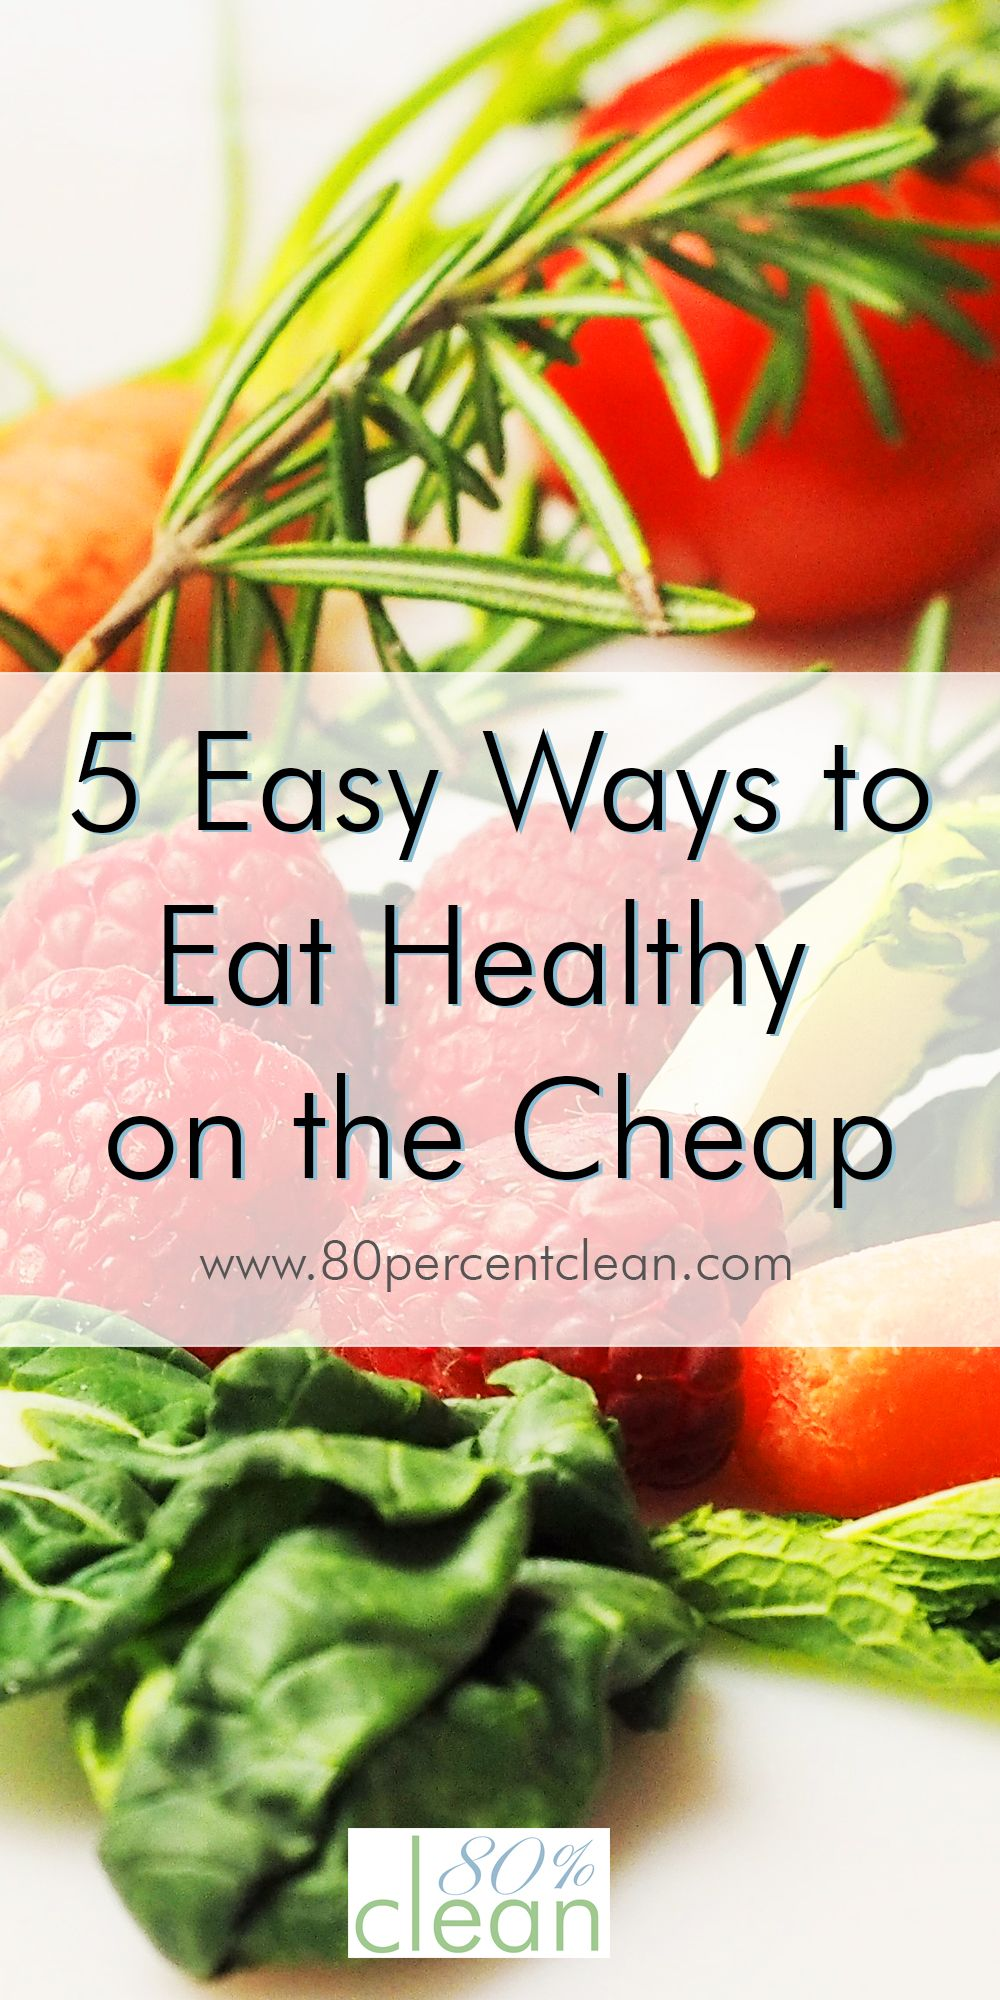 Want to eat healthy, but are on a tight budget? It is easy to eat healthy on the cheap with a few simple changes to your routine and the places you shop.